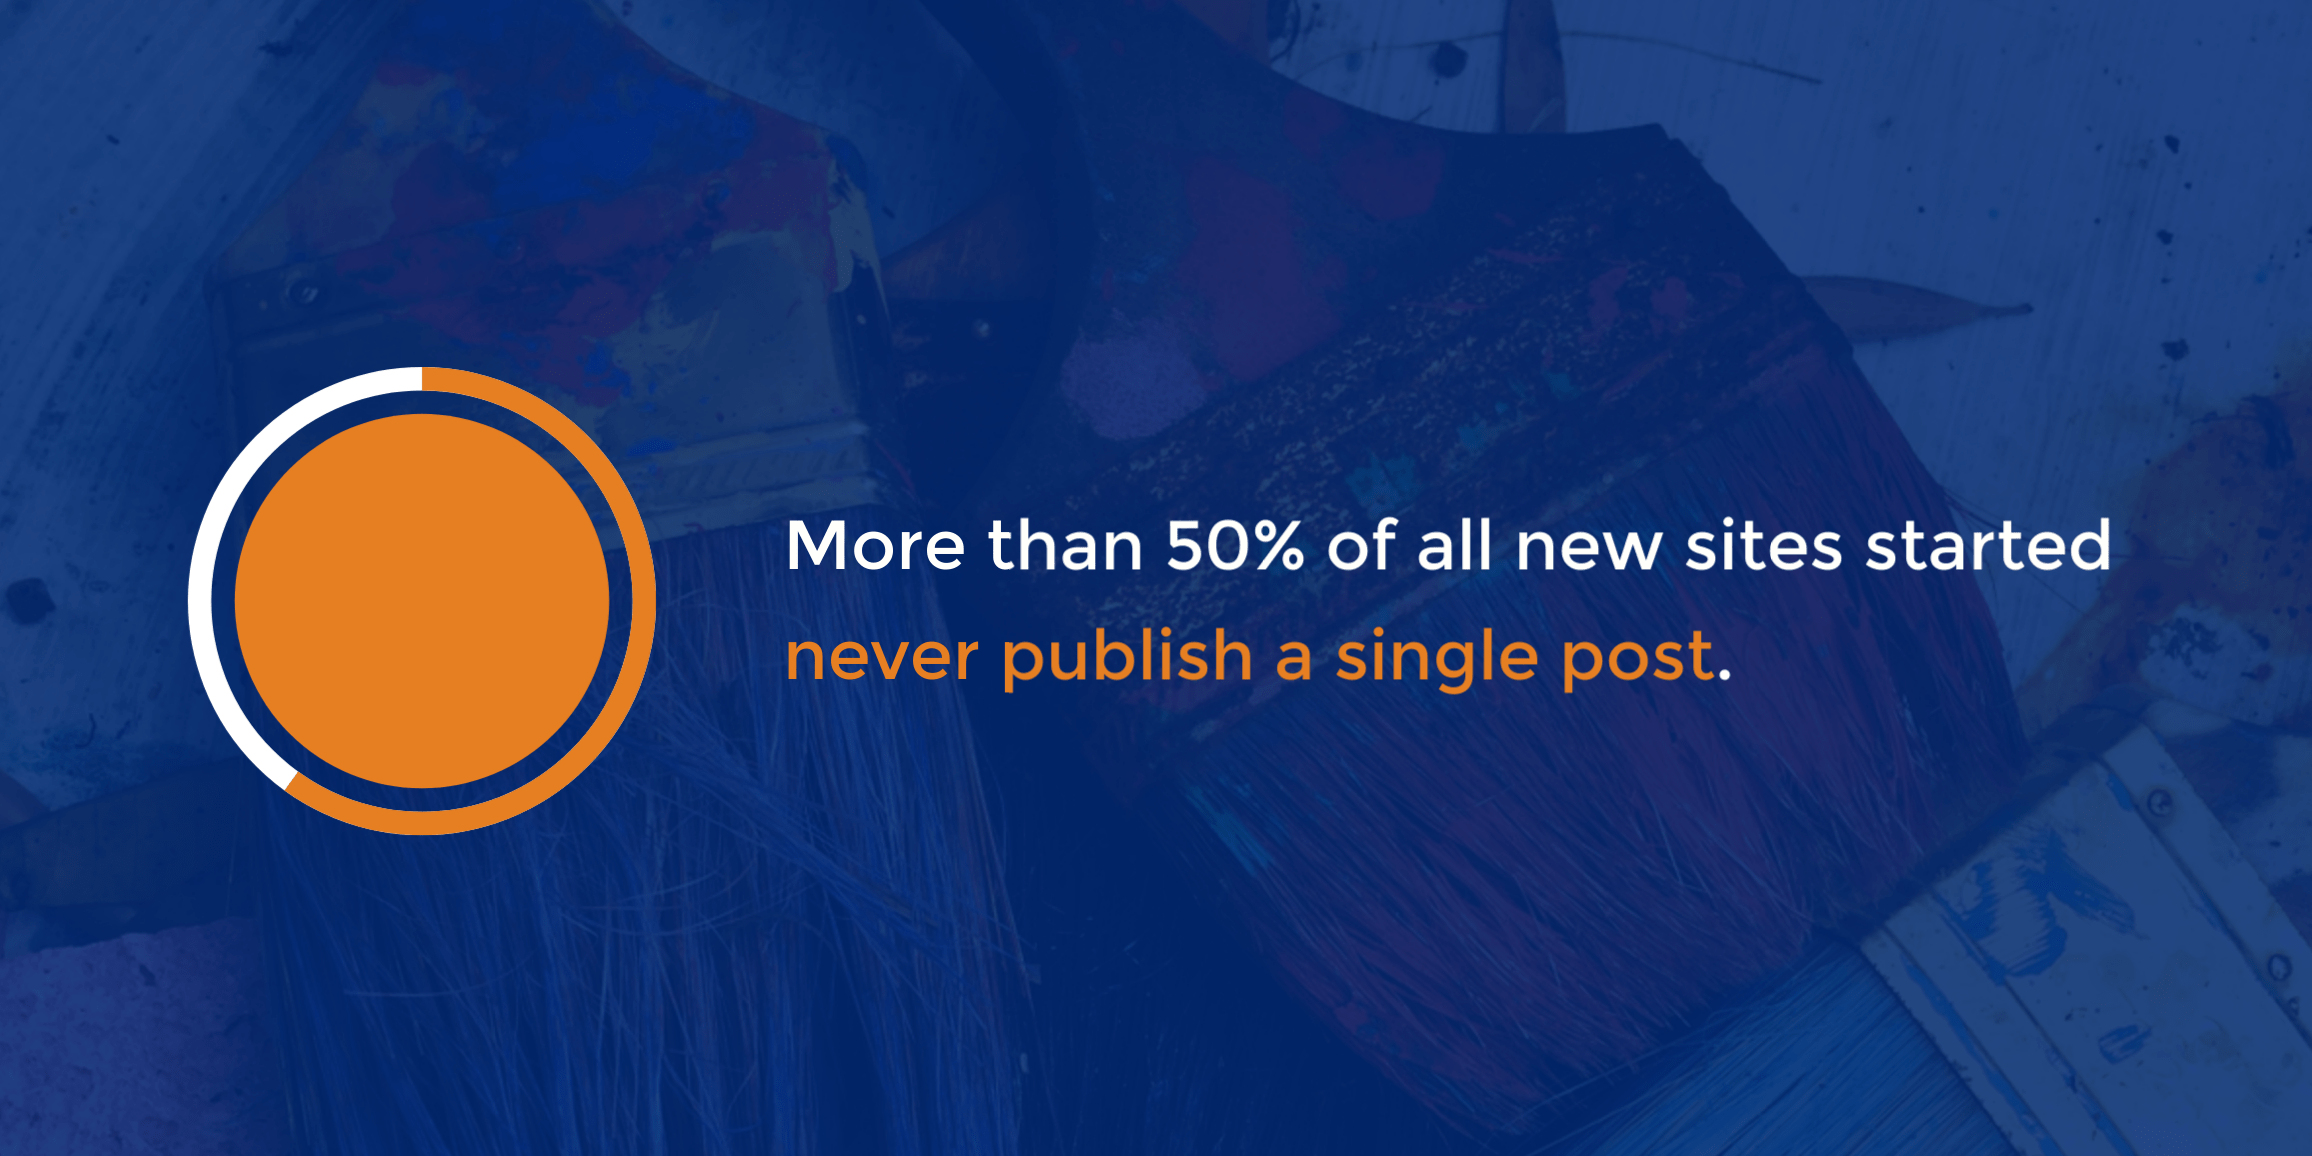 More than 50% of all newly started sites never publish a single post